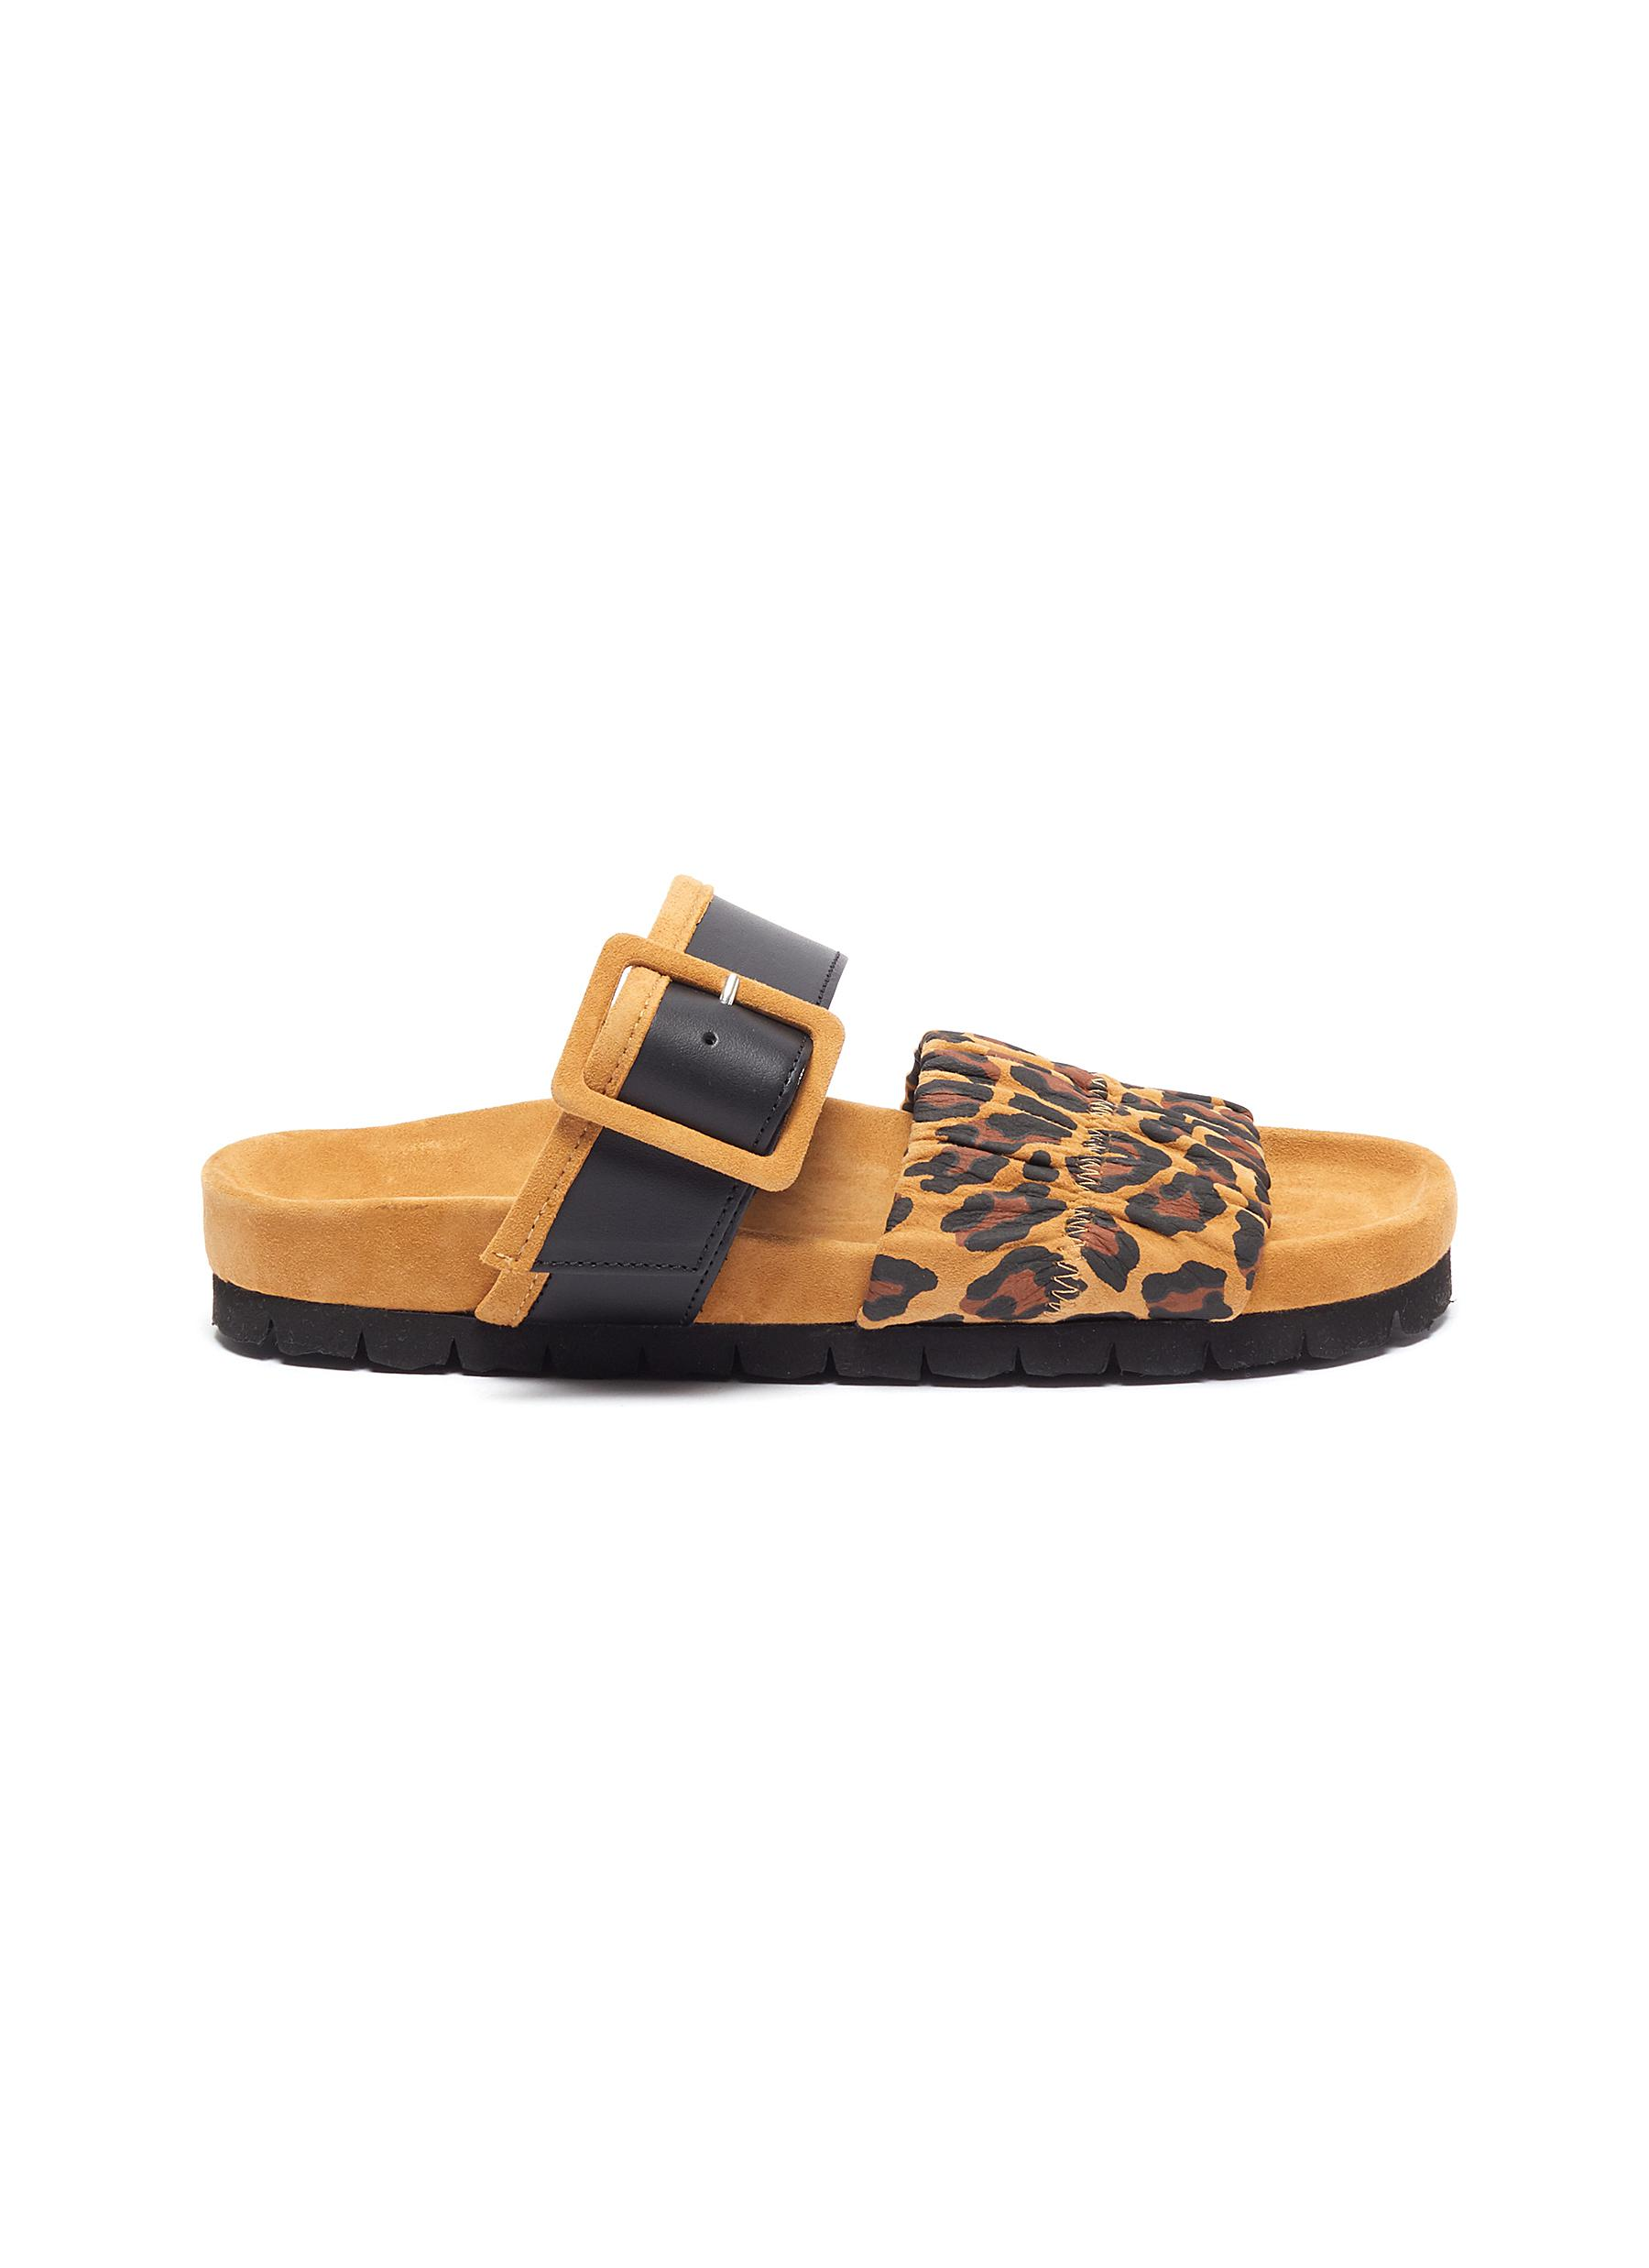 Pierre Hardy Flats Alpha Mare leopard print moulded footbed sandals